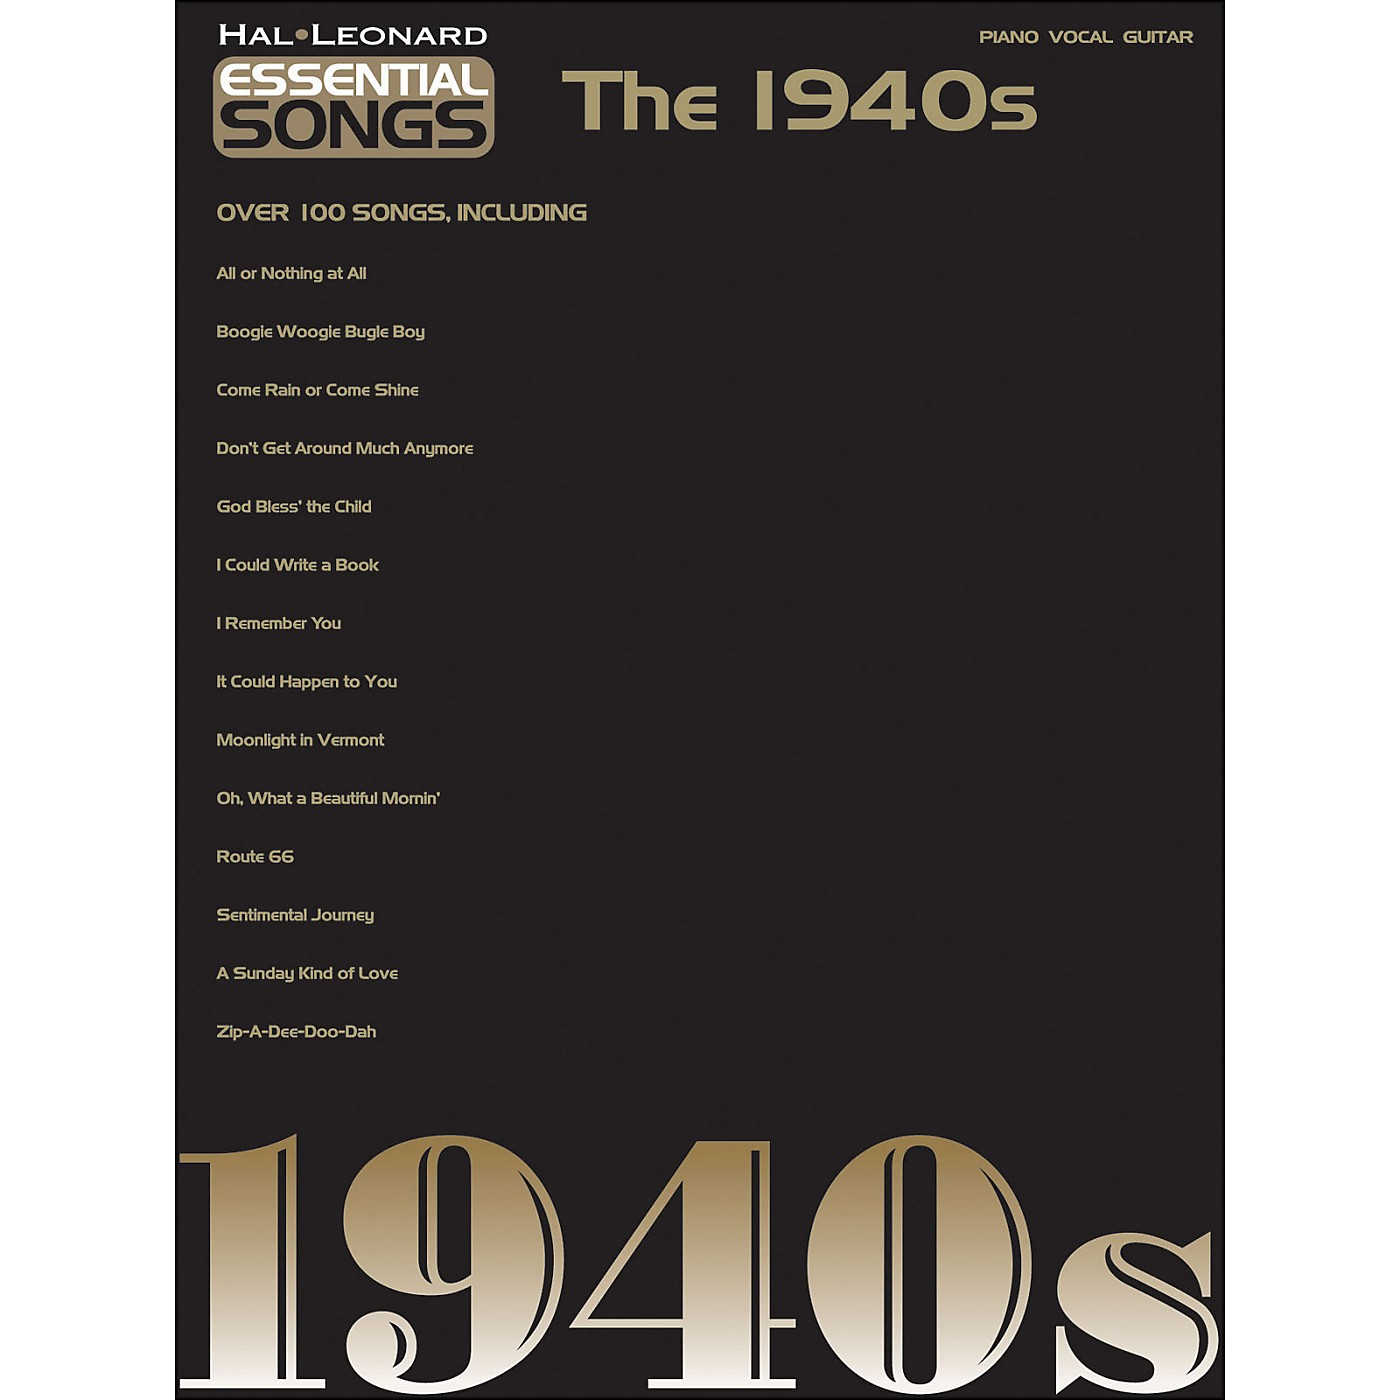 Hal Leonard Essential Songs - The 1940s arranged for piano, vocal, and guitar (P/V/G) thumbnail